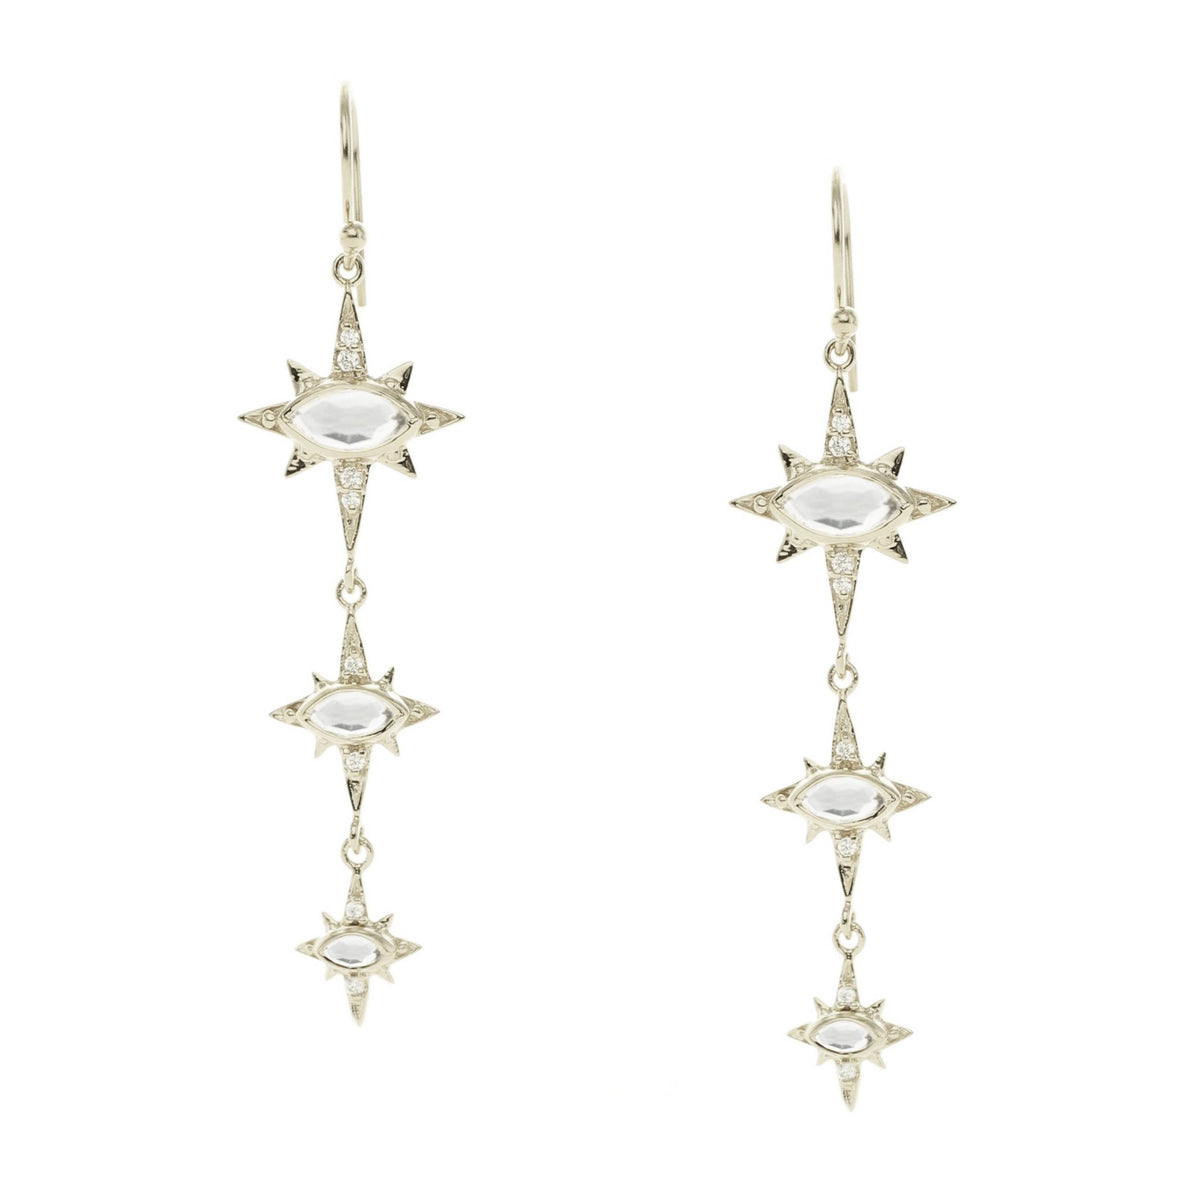 IMAGINE DROP TRIO EARRINGS - WHITE TOPAZ, CUBIC ZIRCONIA & SILVER - SO PRETTY CARA COTTER